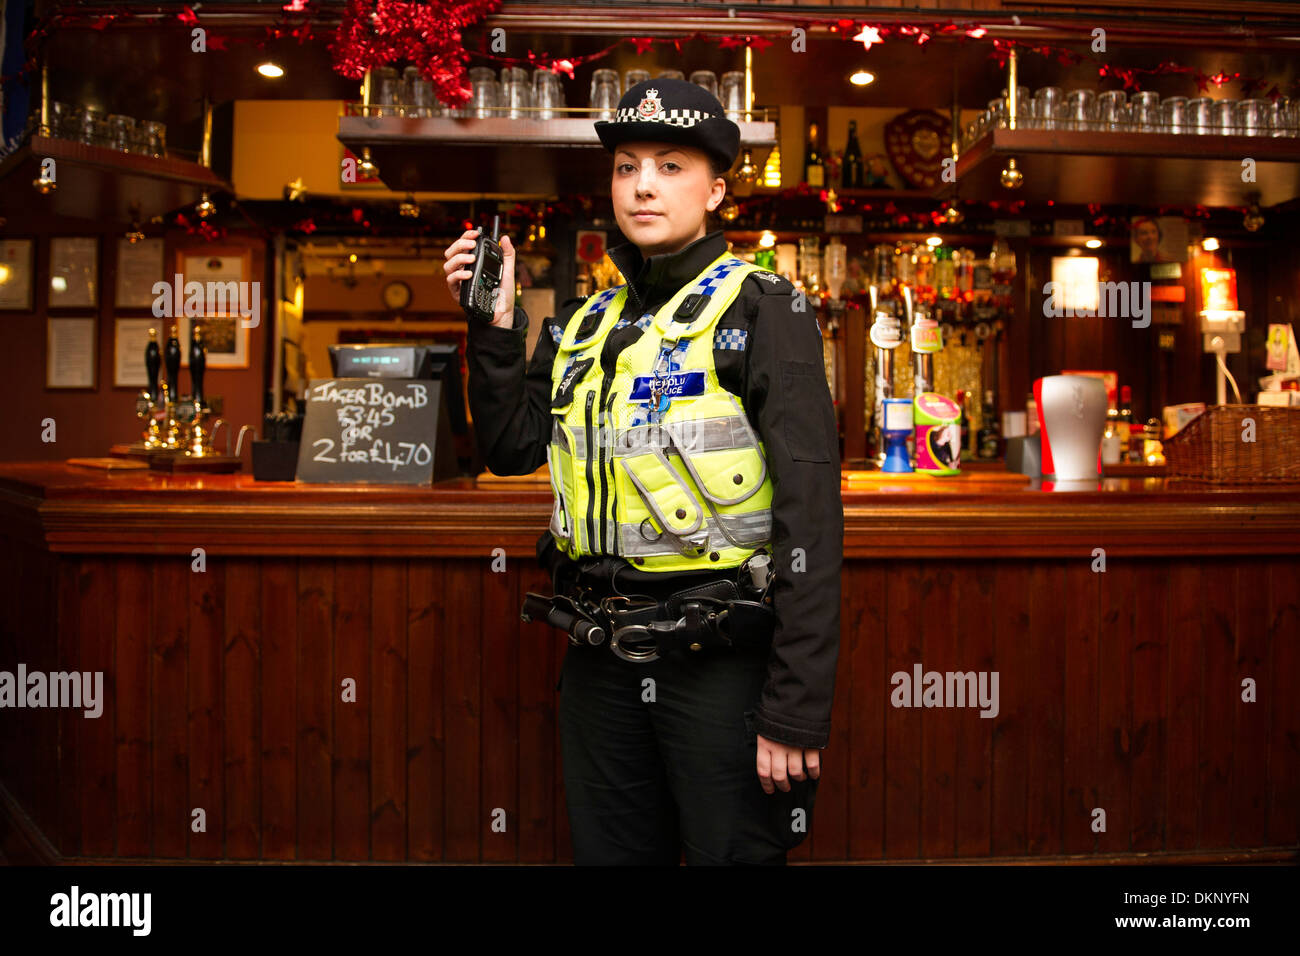 A police officer in a pub. - Stock Image